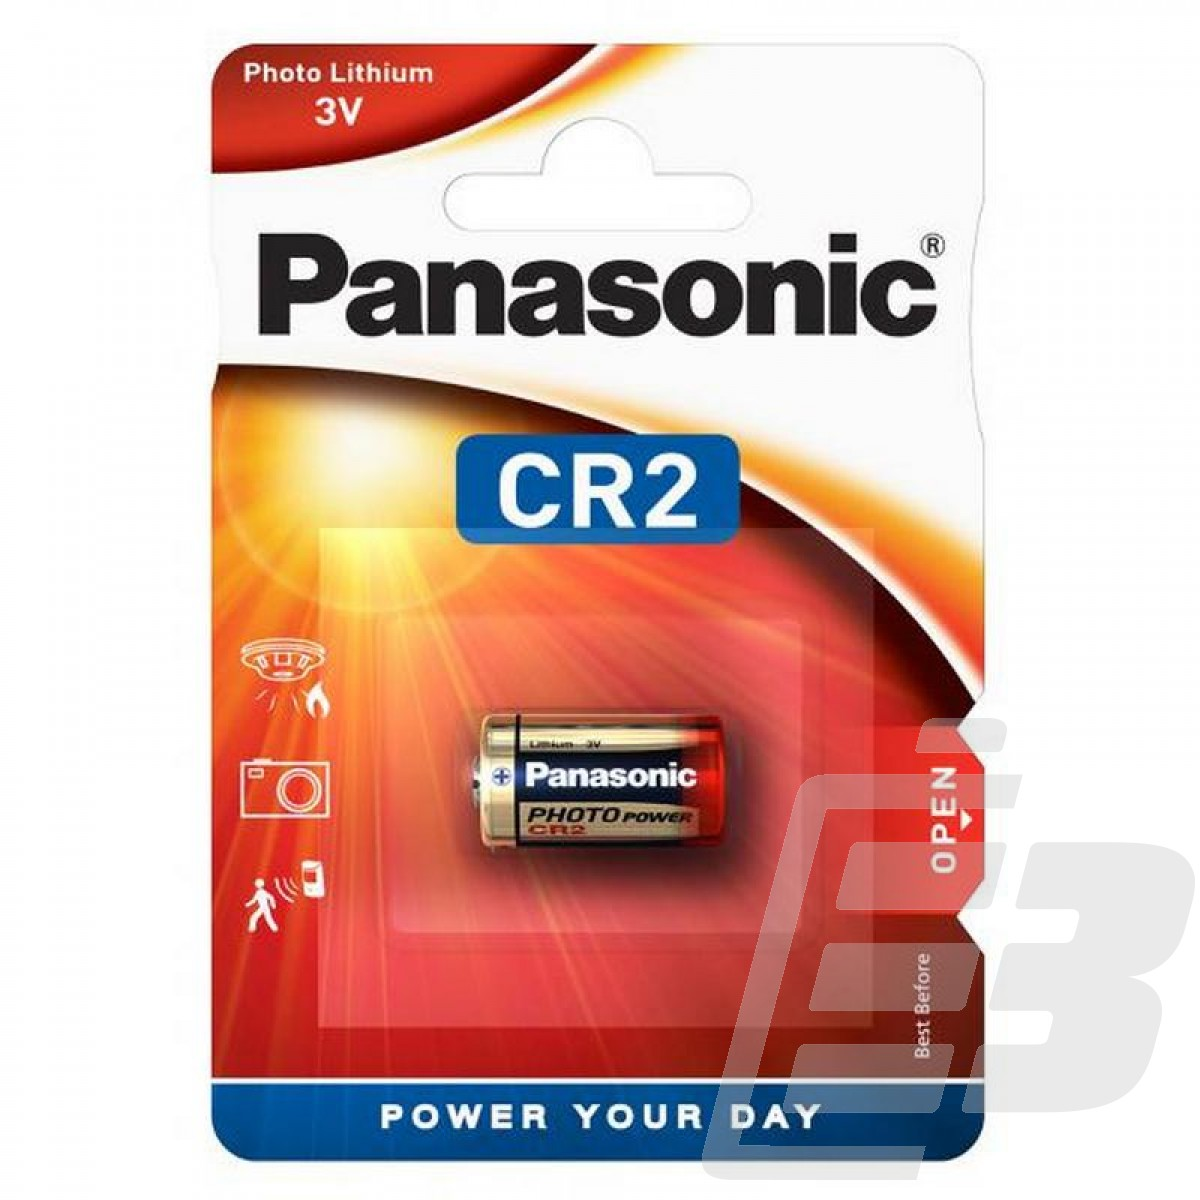 Panasonic_CR2